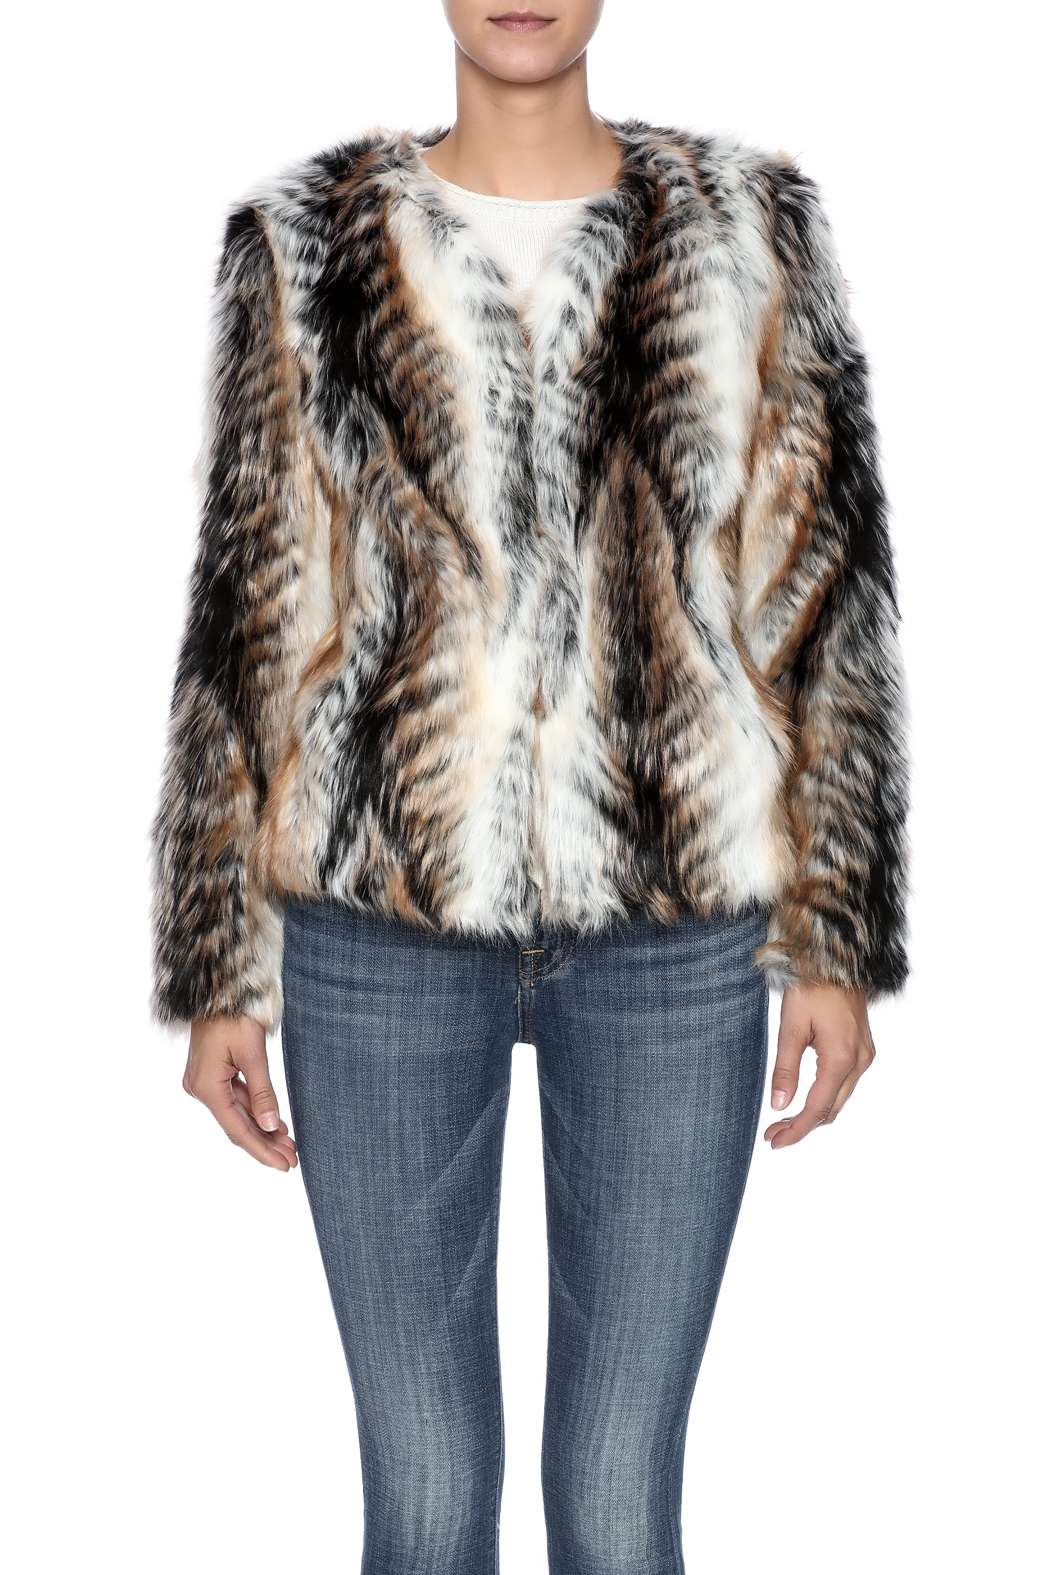 rebecca elliott Tan Faux-Fur Jacket - Side Cropped Image